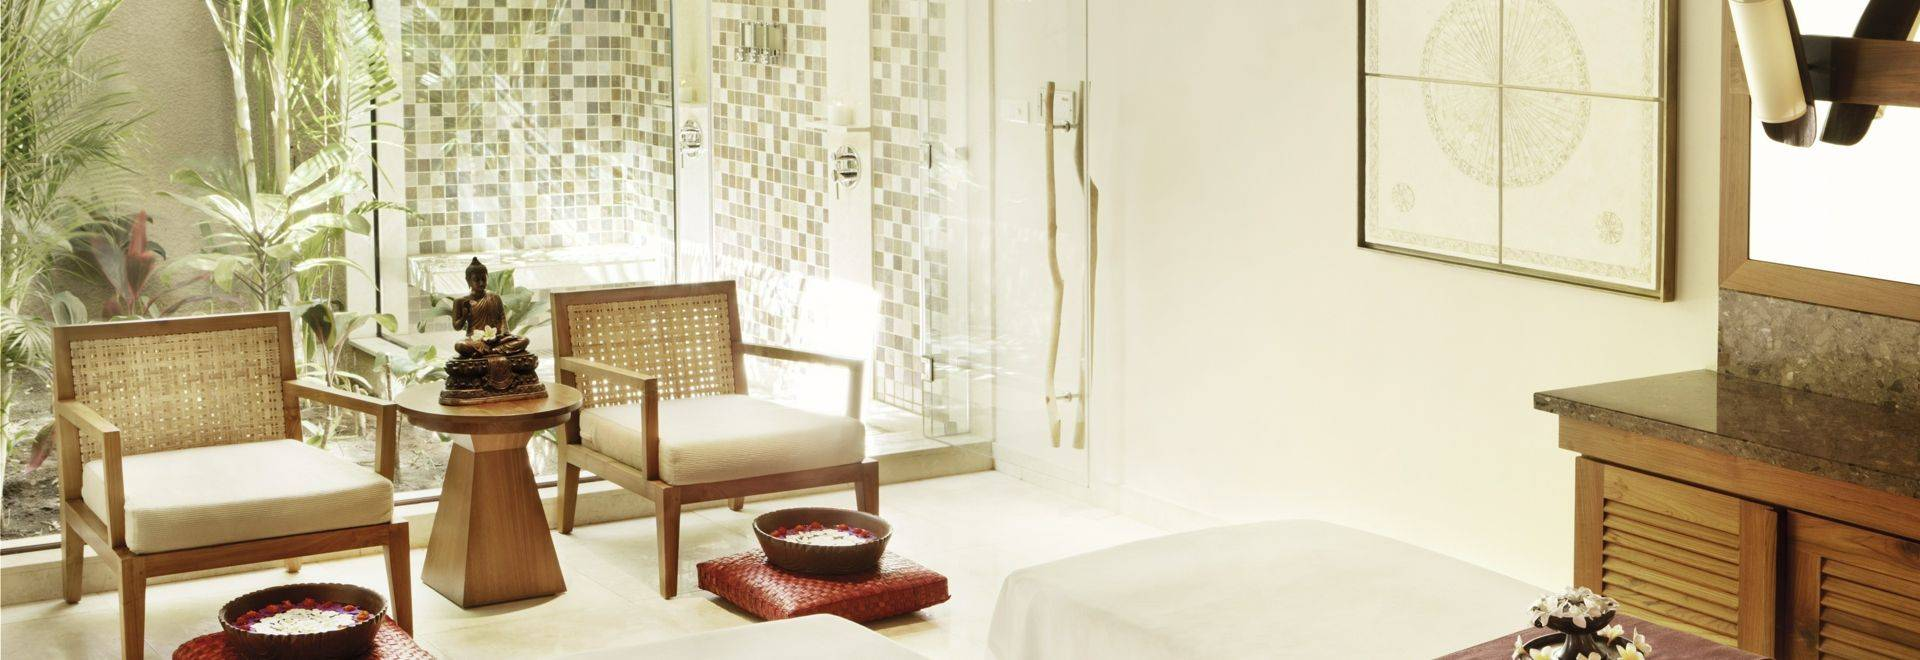 Shanti-Maurice-spa-treatment-room-2.jpg